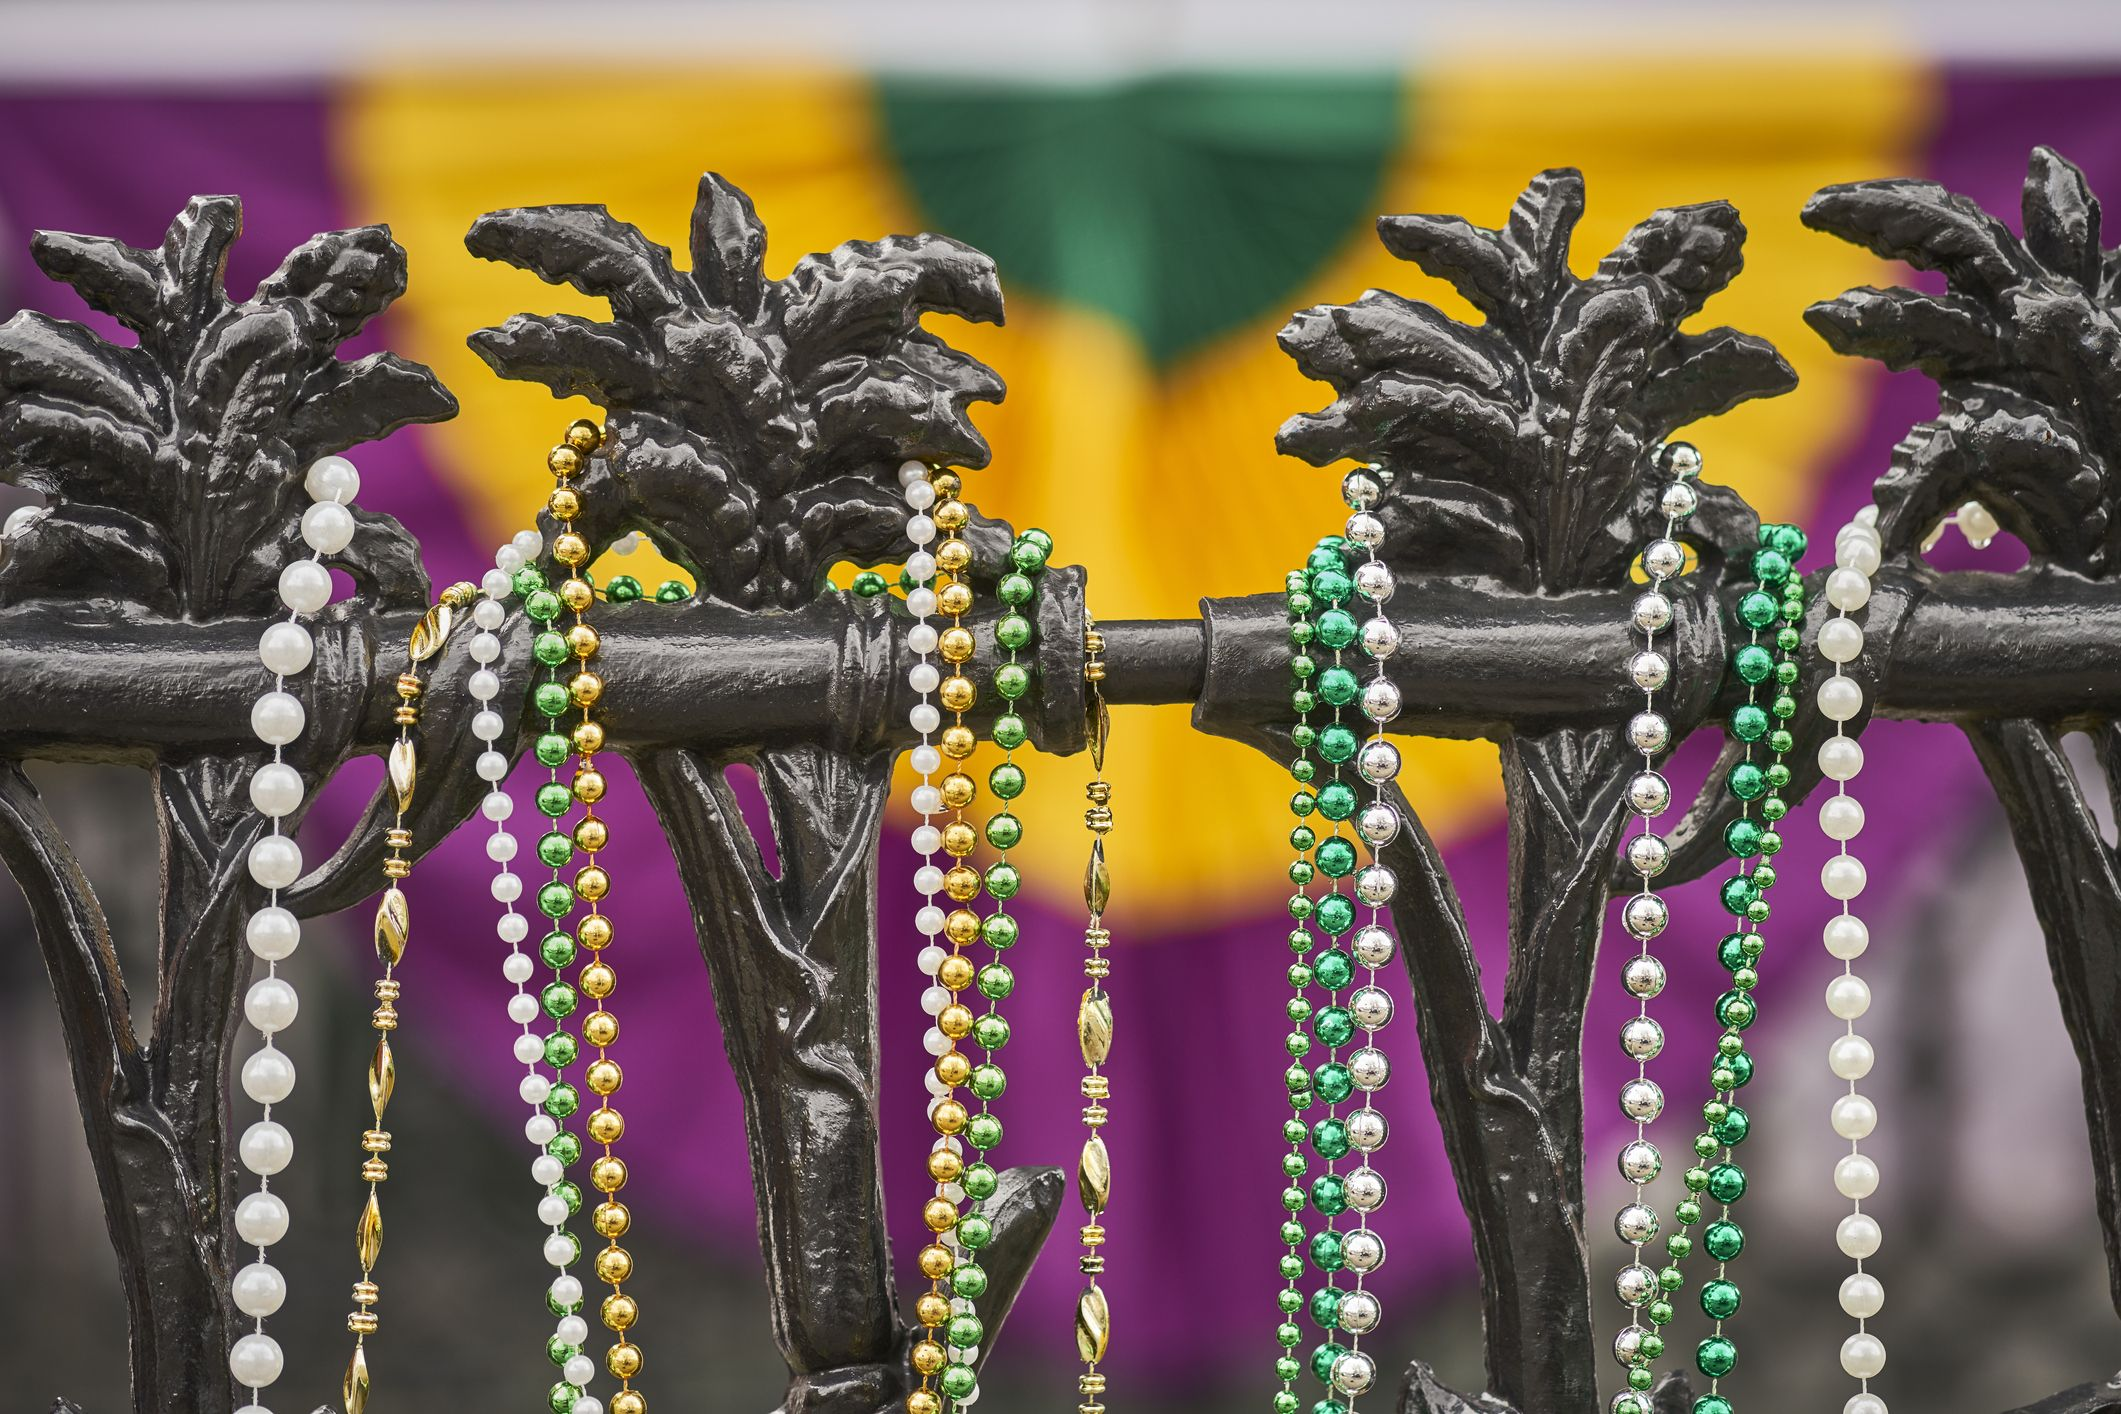 photo regarding Mardi Gras Trivia Quiz Printable called Mardi Gras Trivia Enjoyable Information Concerning Mardi Gras 2019